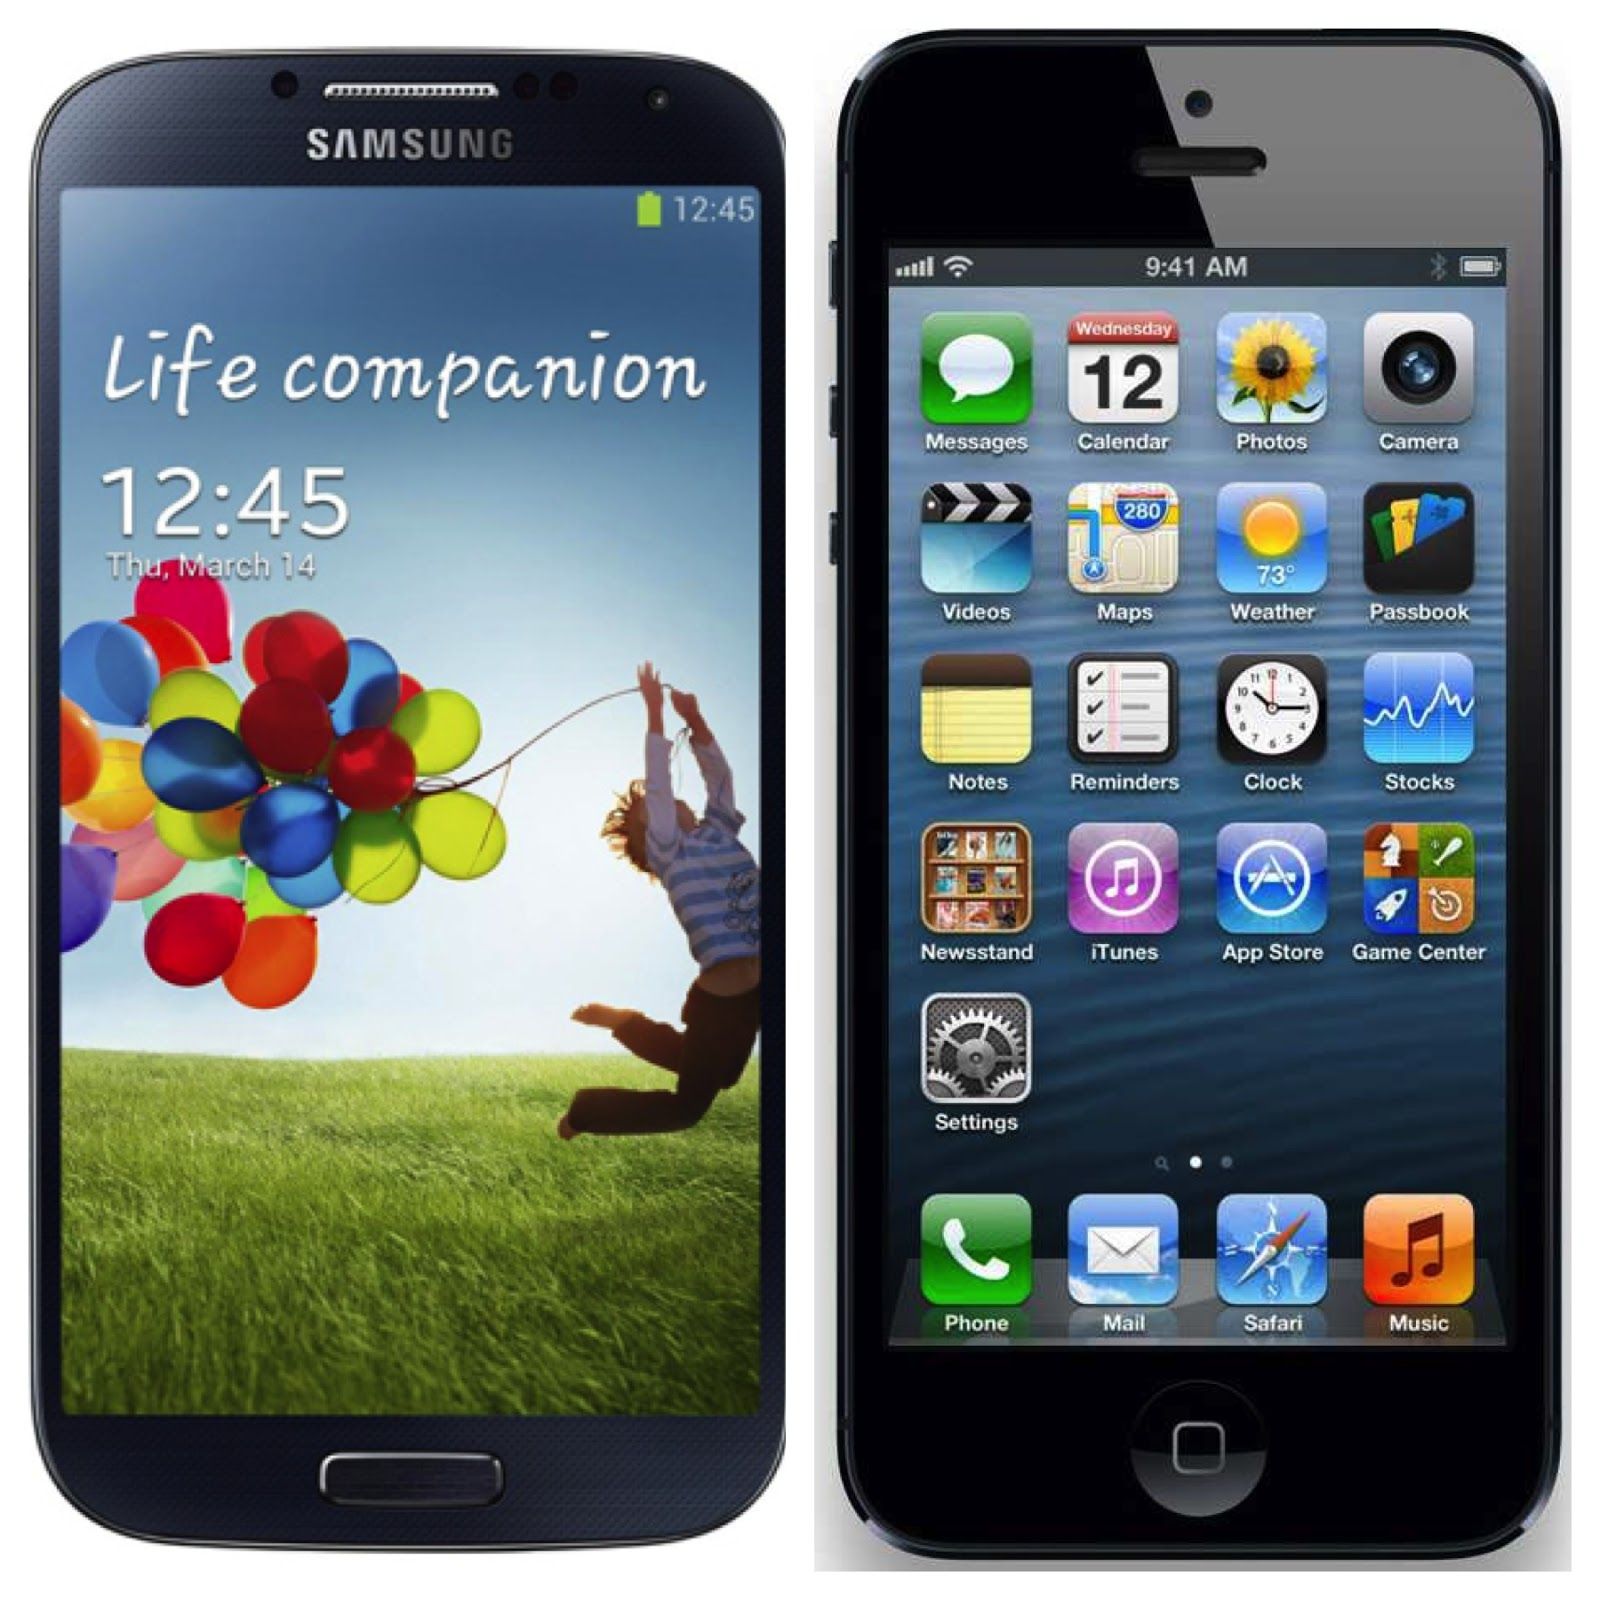 samsung galaxy s4 vs apple iphone 5 in details cars life cars fashion lifestyle blog. Black Bedroom Furniture Sets. Home Design Ideas